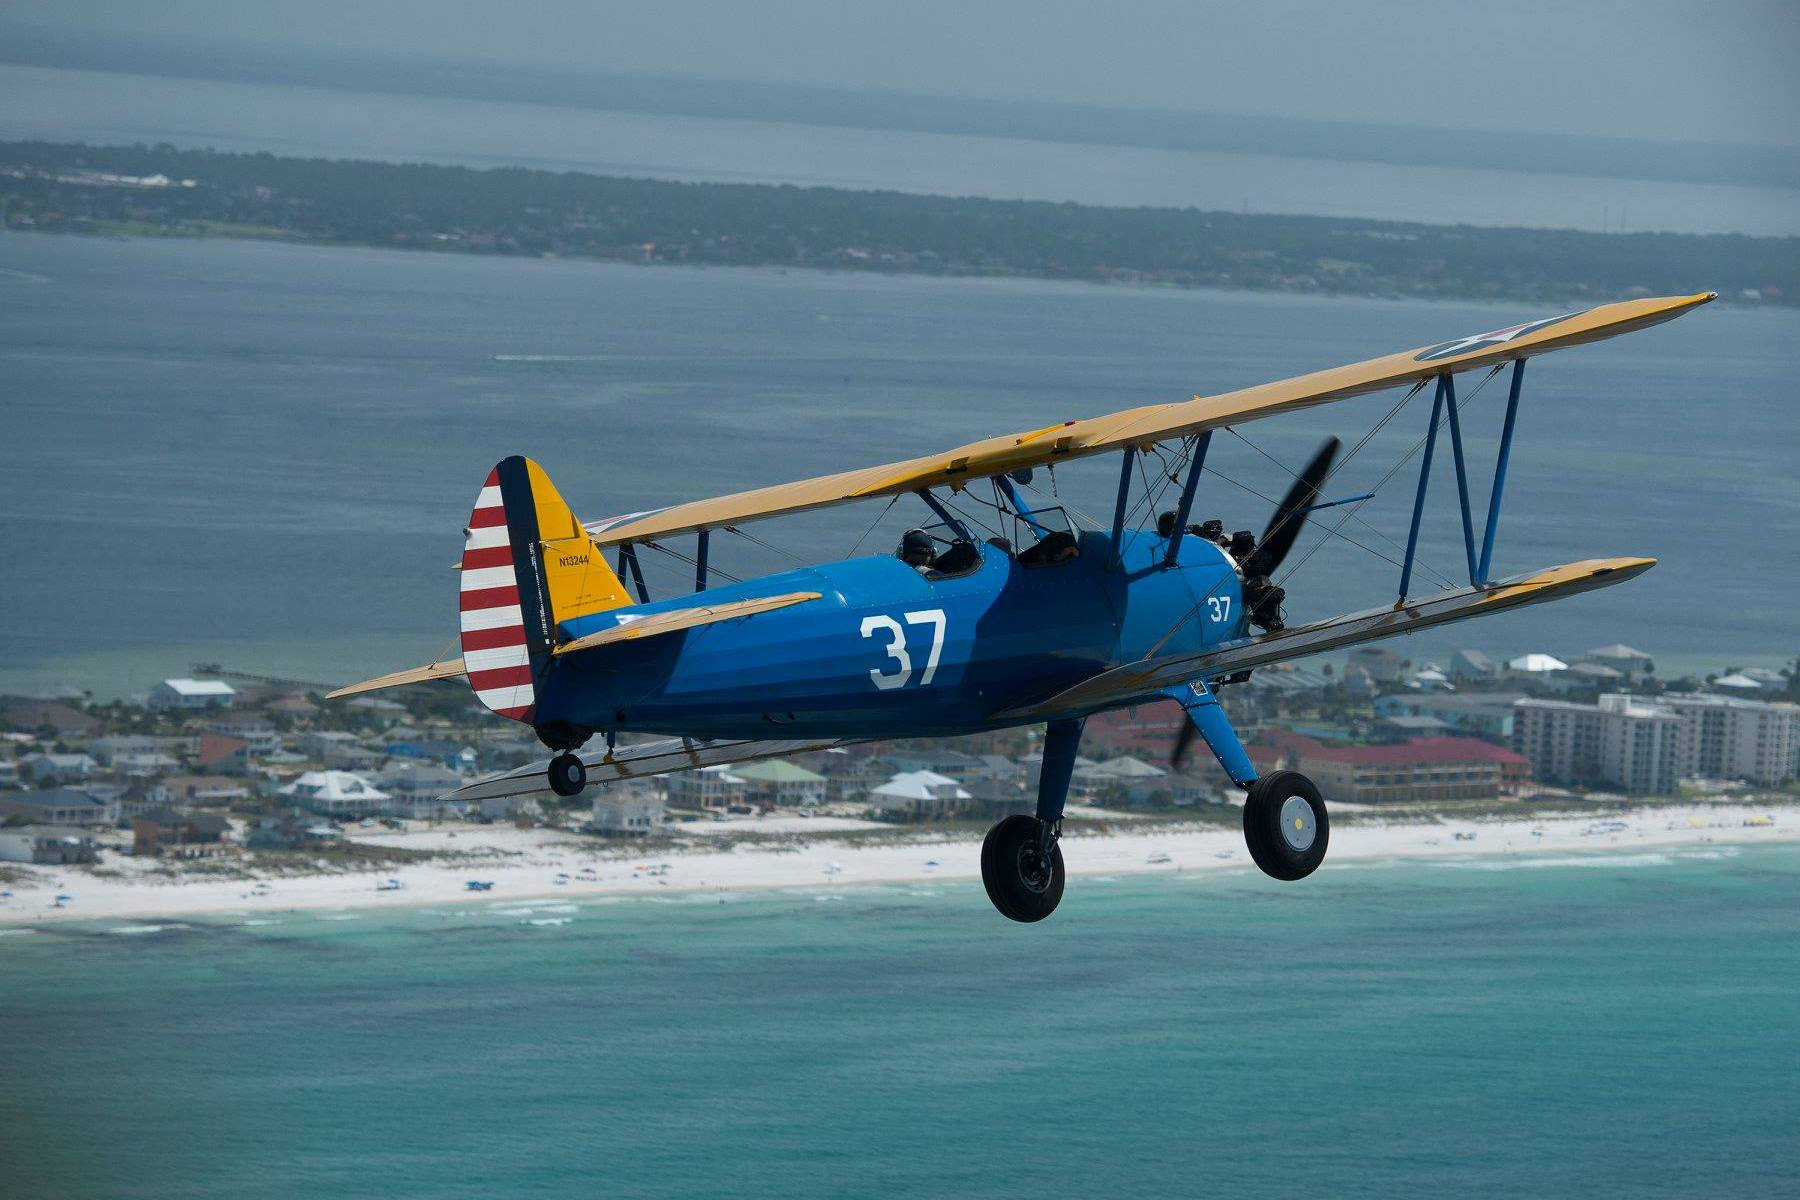 Wwii Vets Reunite With Beloved Biplanes Before Pensacola